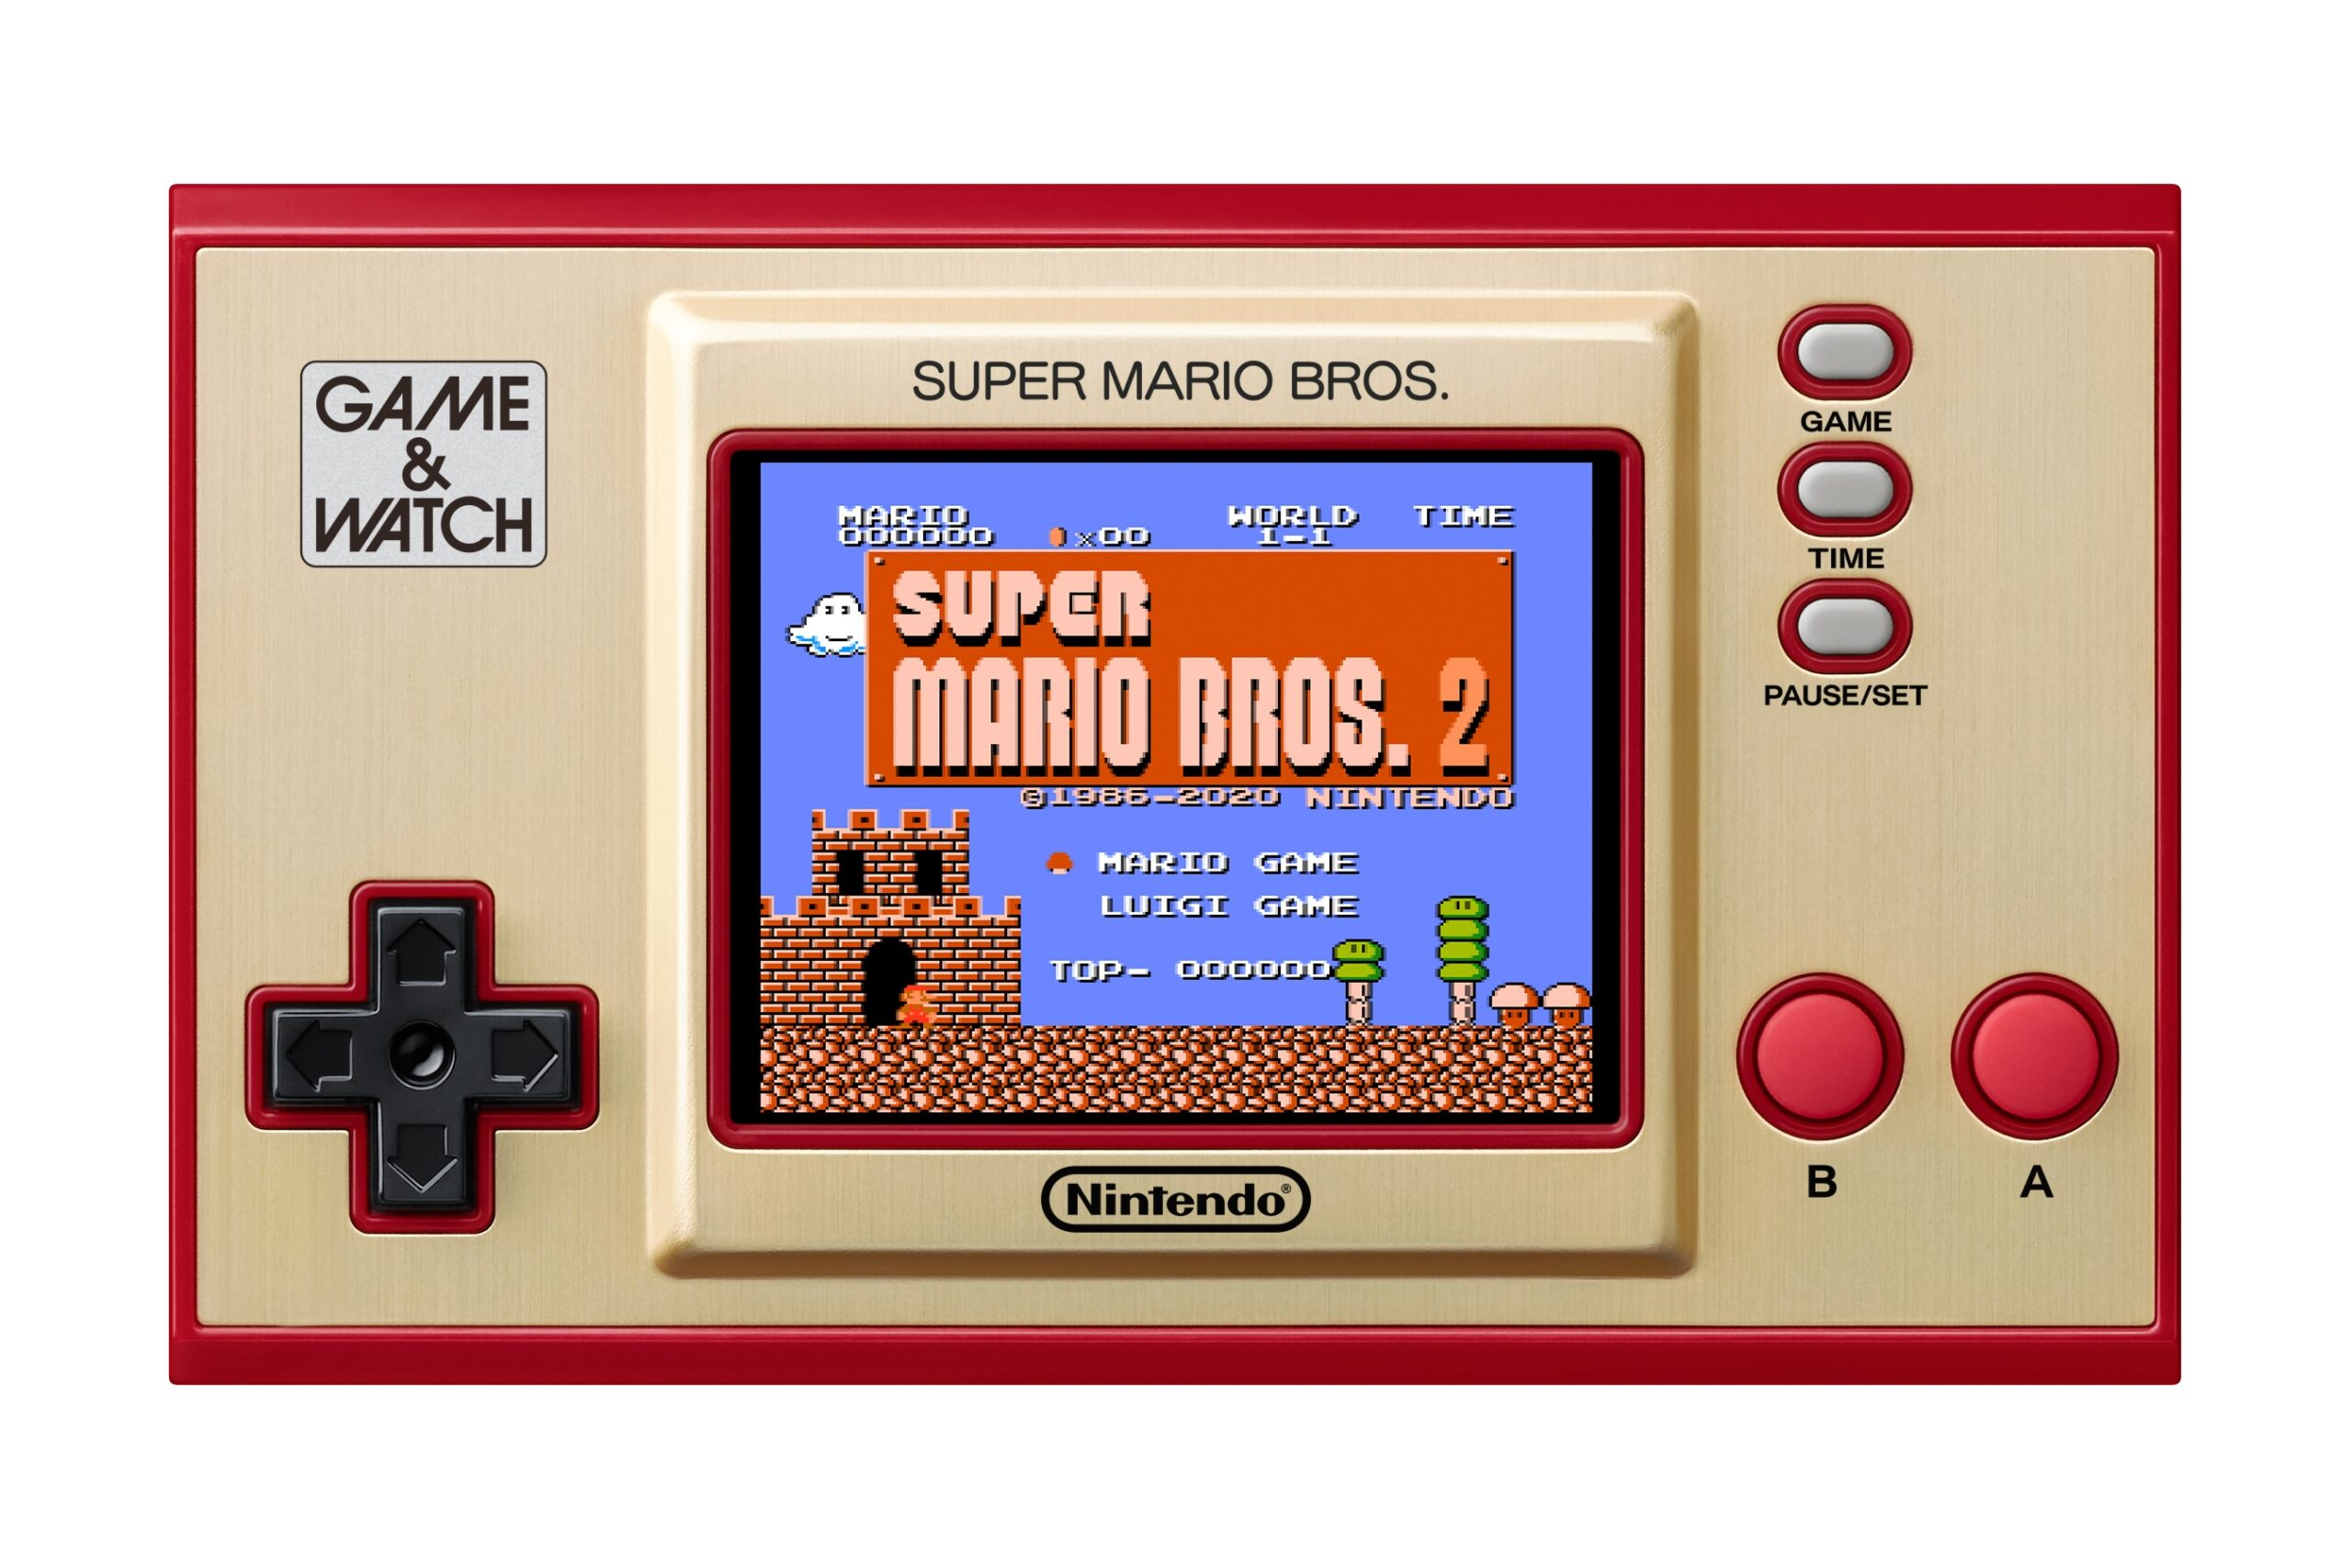 Game-and-Watch-Super-Mario-Bros_2020_09-03-20_011